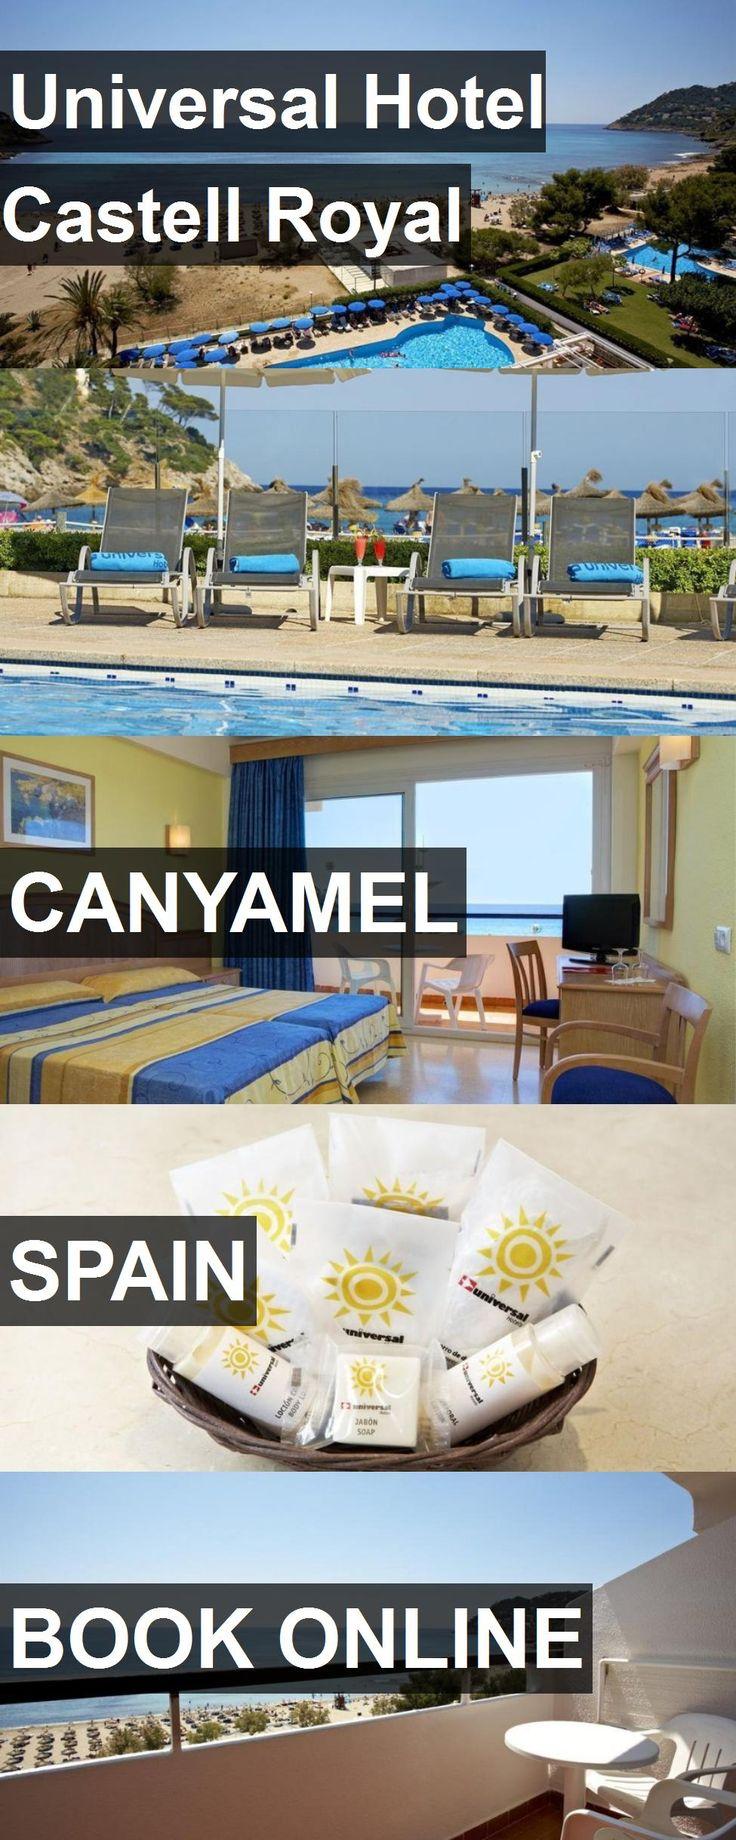 Universal Hotel Castell Royal in Canyamel, Spain. For more information, photos, reviews and best prices please follow the link. #Spain #Canyamel #travel #vacation #hotel